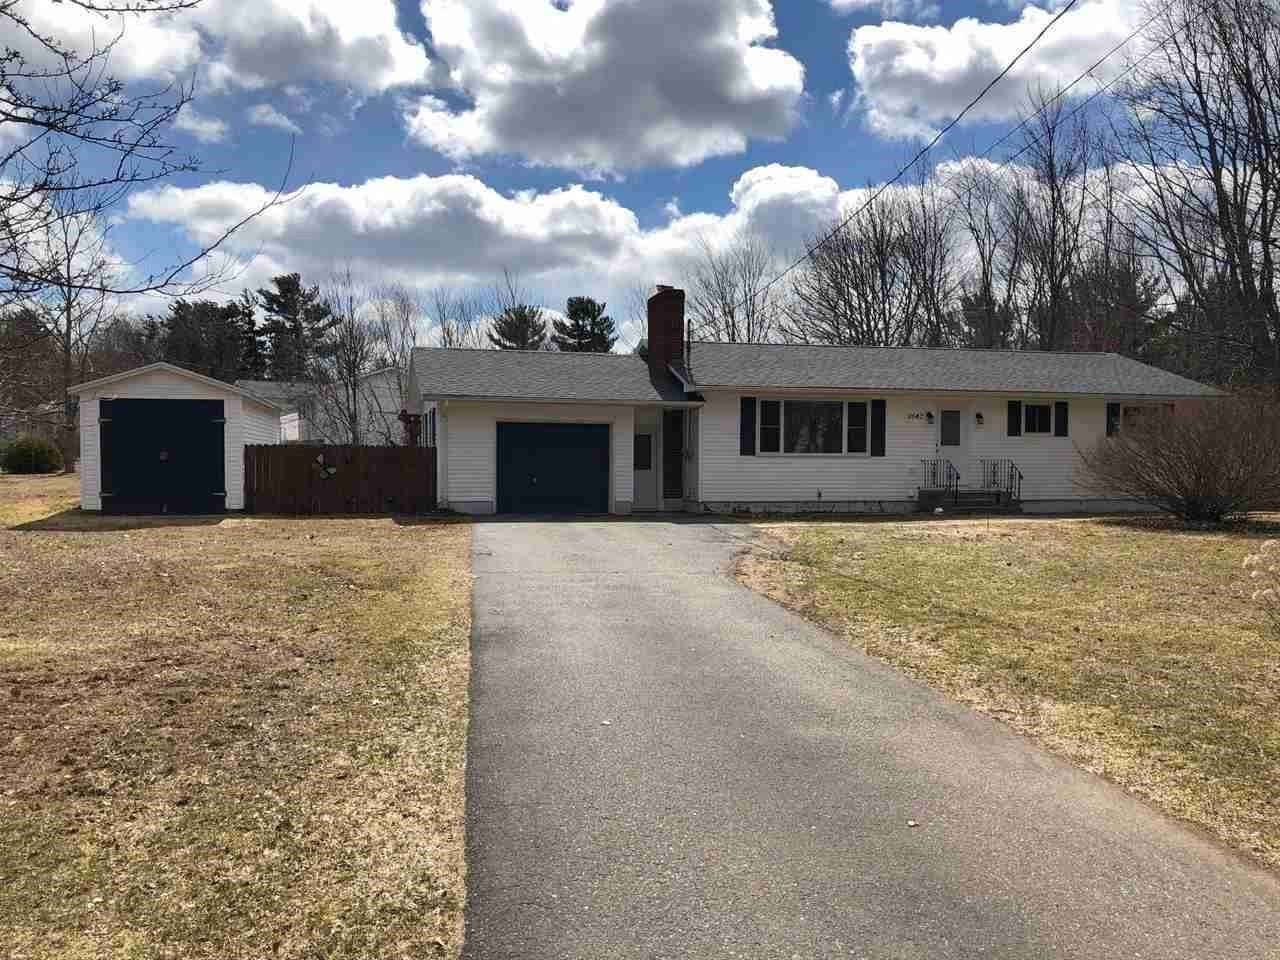 Main Photo: 2642 Pinecrest Drive in Coldbrook: 404-Kings County Residential for sale (Annapolis Valley)  : MLS®# 201827930